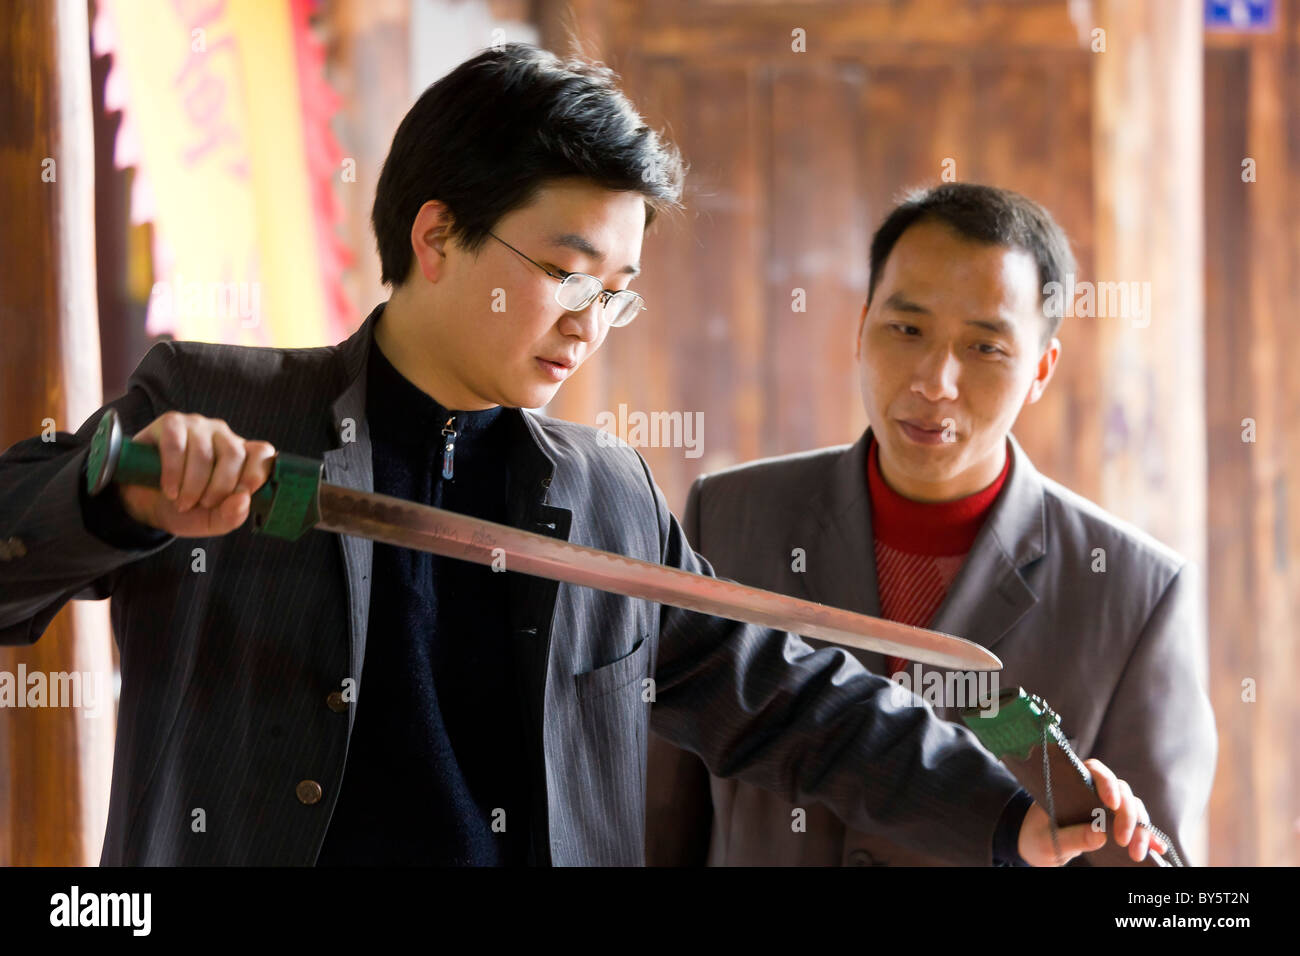 Two men inspect sword in antique shop in Huanglongxi, near Chengdu, Sichuan Province, China. JMH4365 - Stock Image